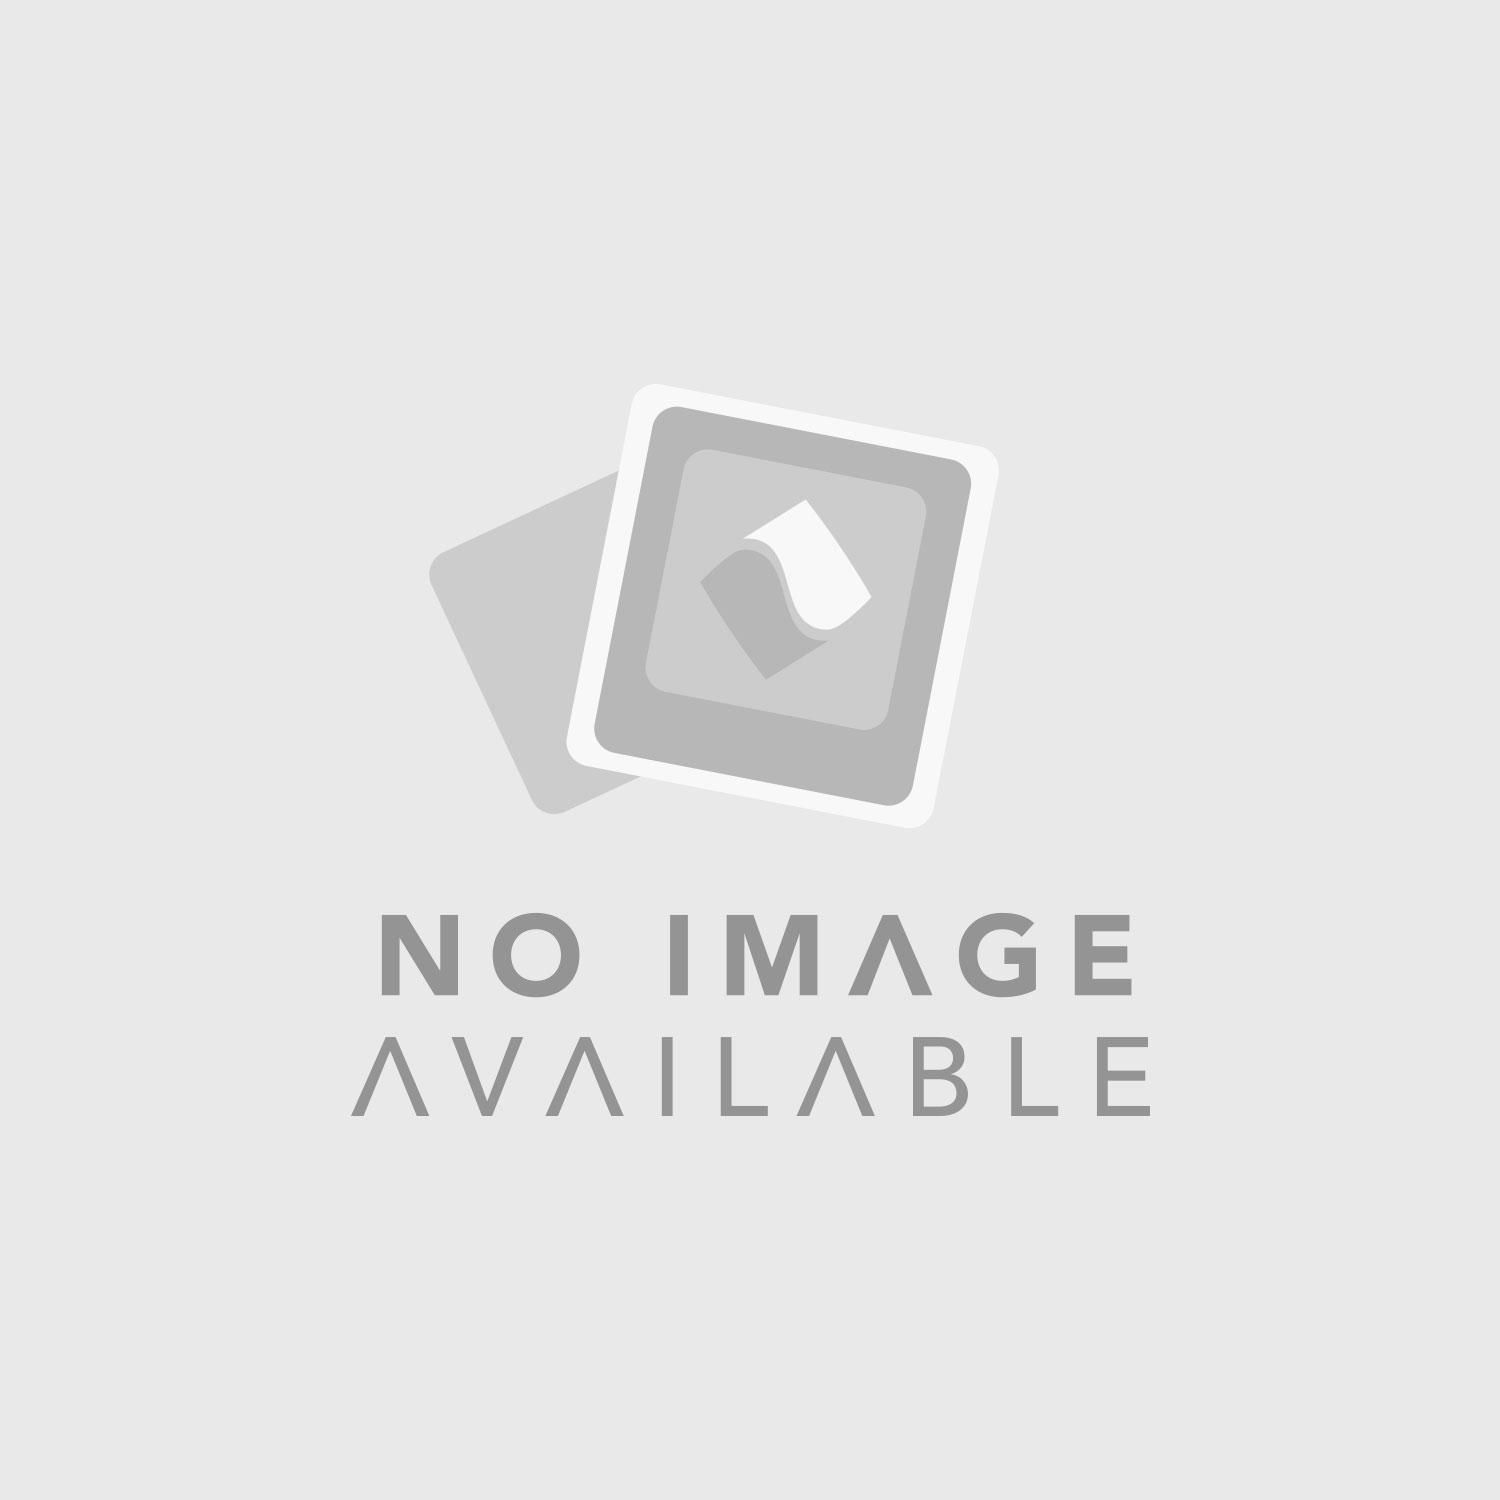 AKG CBL410PCC Boundary Layer Microphone (White)